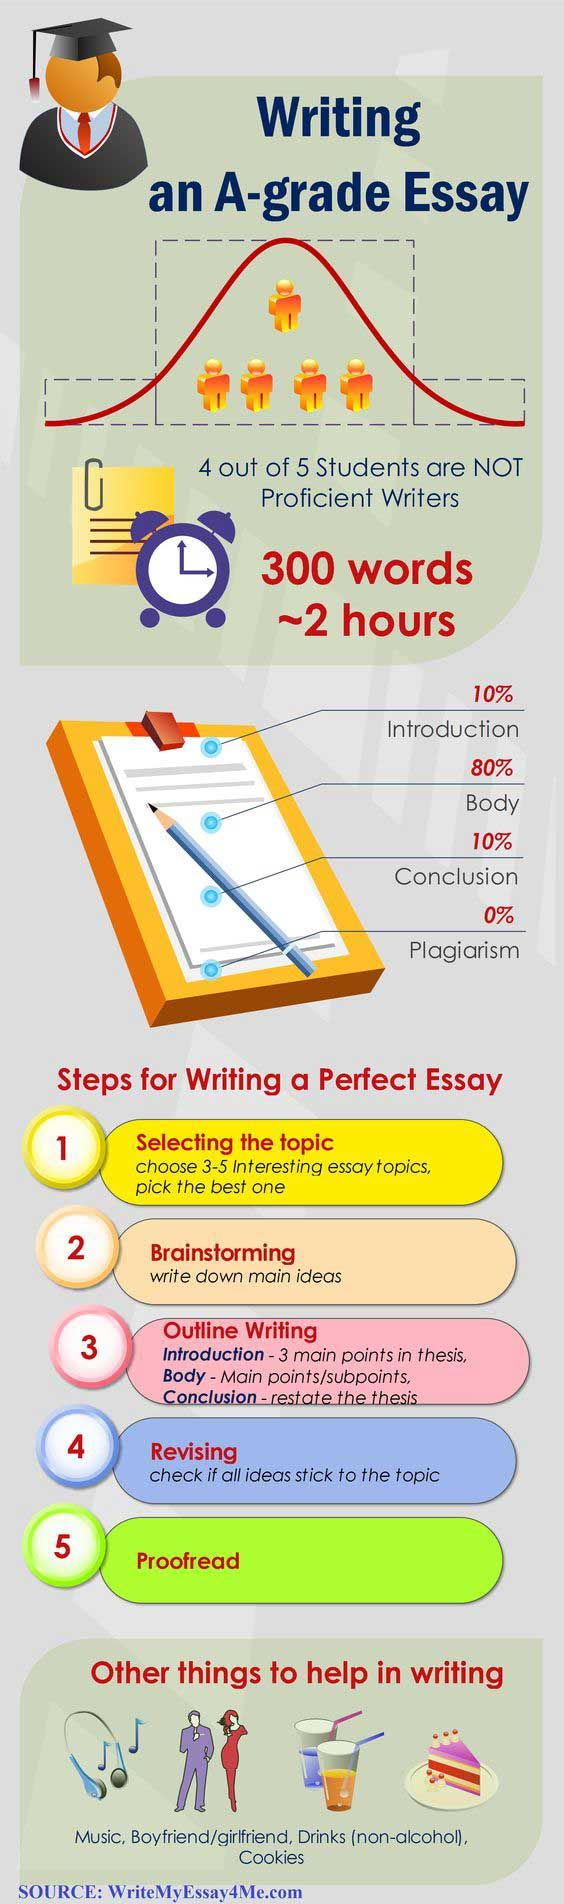 Help with writing an essay guide for high school